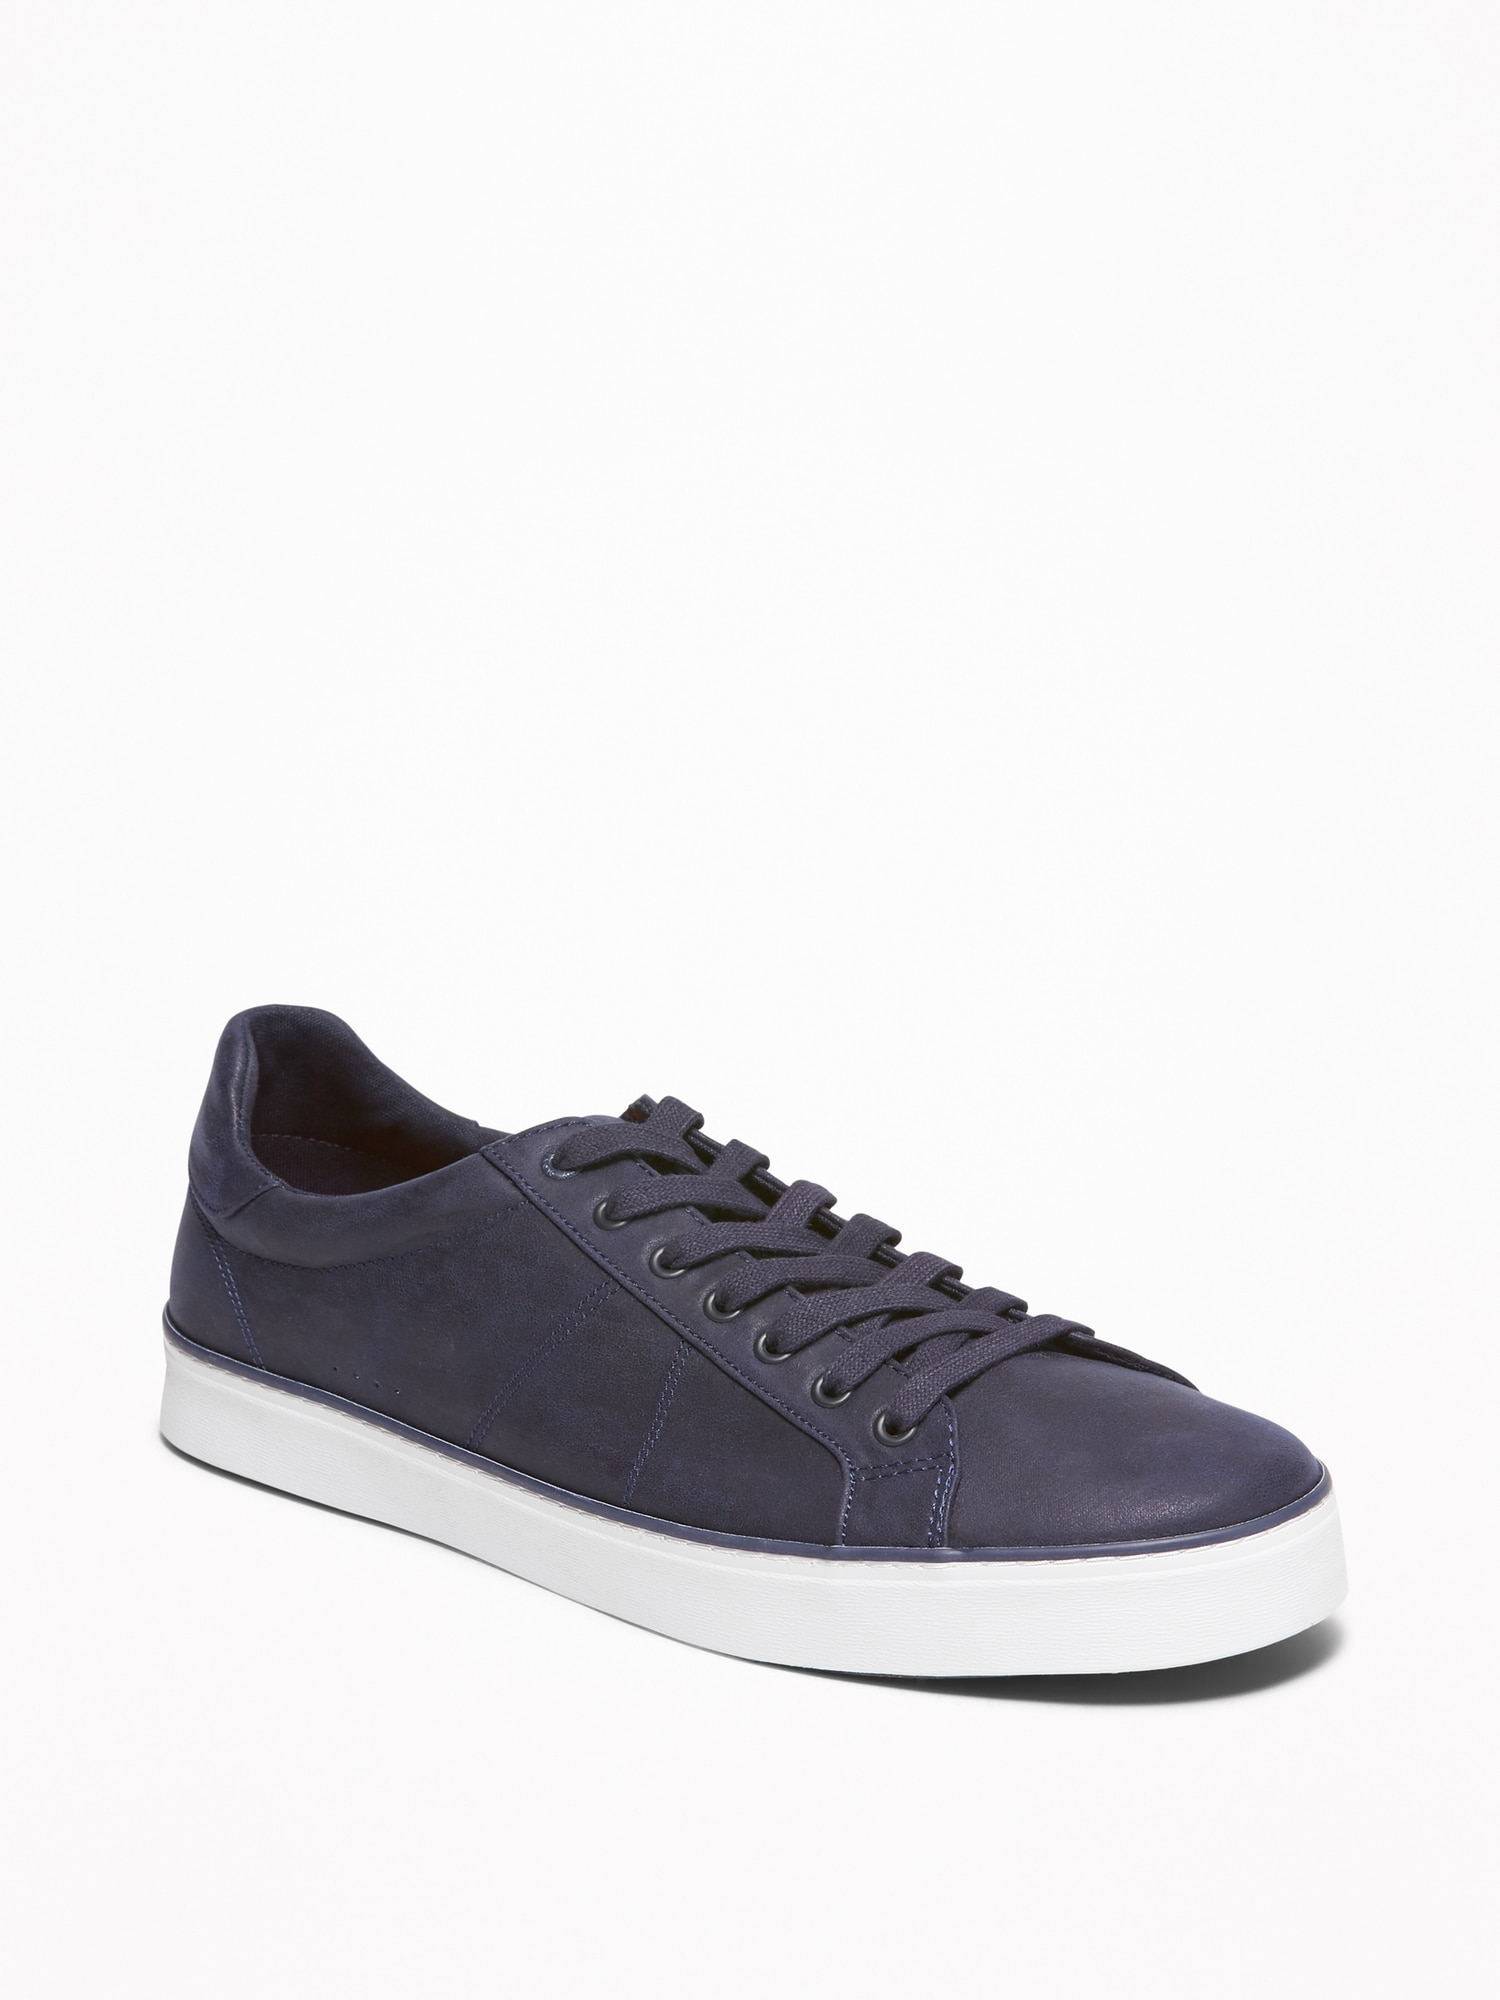 Faux-Leather Sneakers for Men | Old Navy